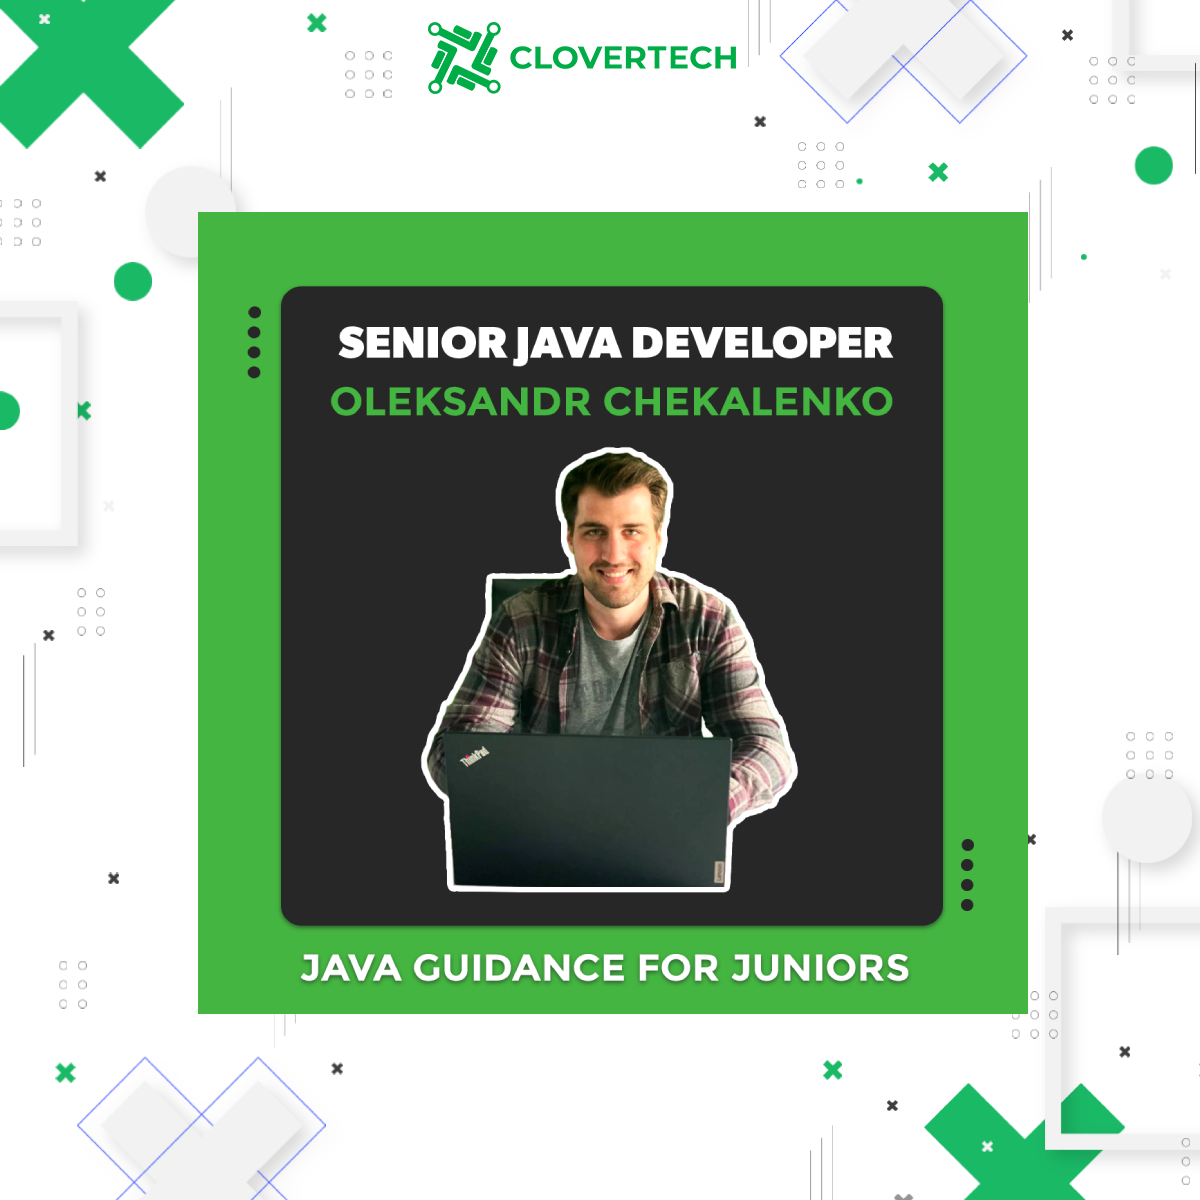 Why should one become a Java Developer? Our Java Developer Oleksandr Chekalenko has an answer for Juniors.